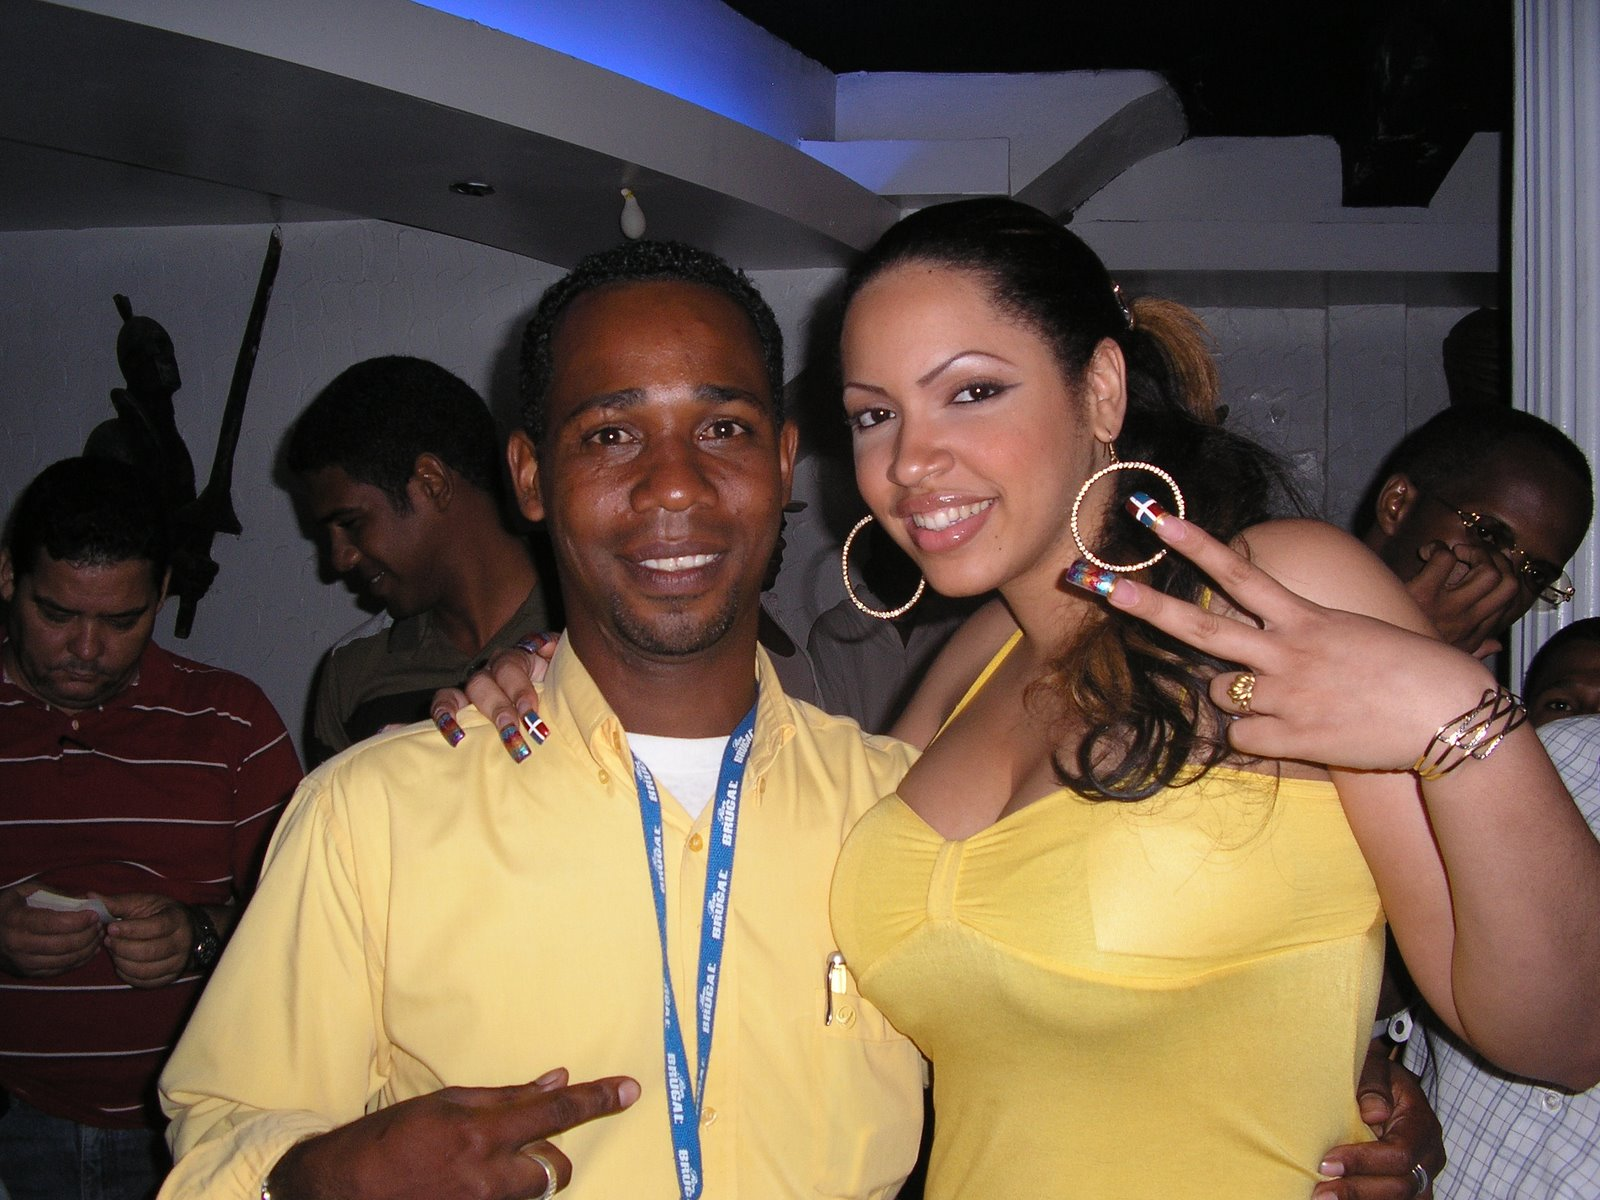 hato mayor men Meet hundreds of single latin women like anity from hato mayor del rey in dominican republic who's looking for a relationship with a man.